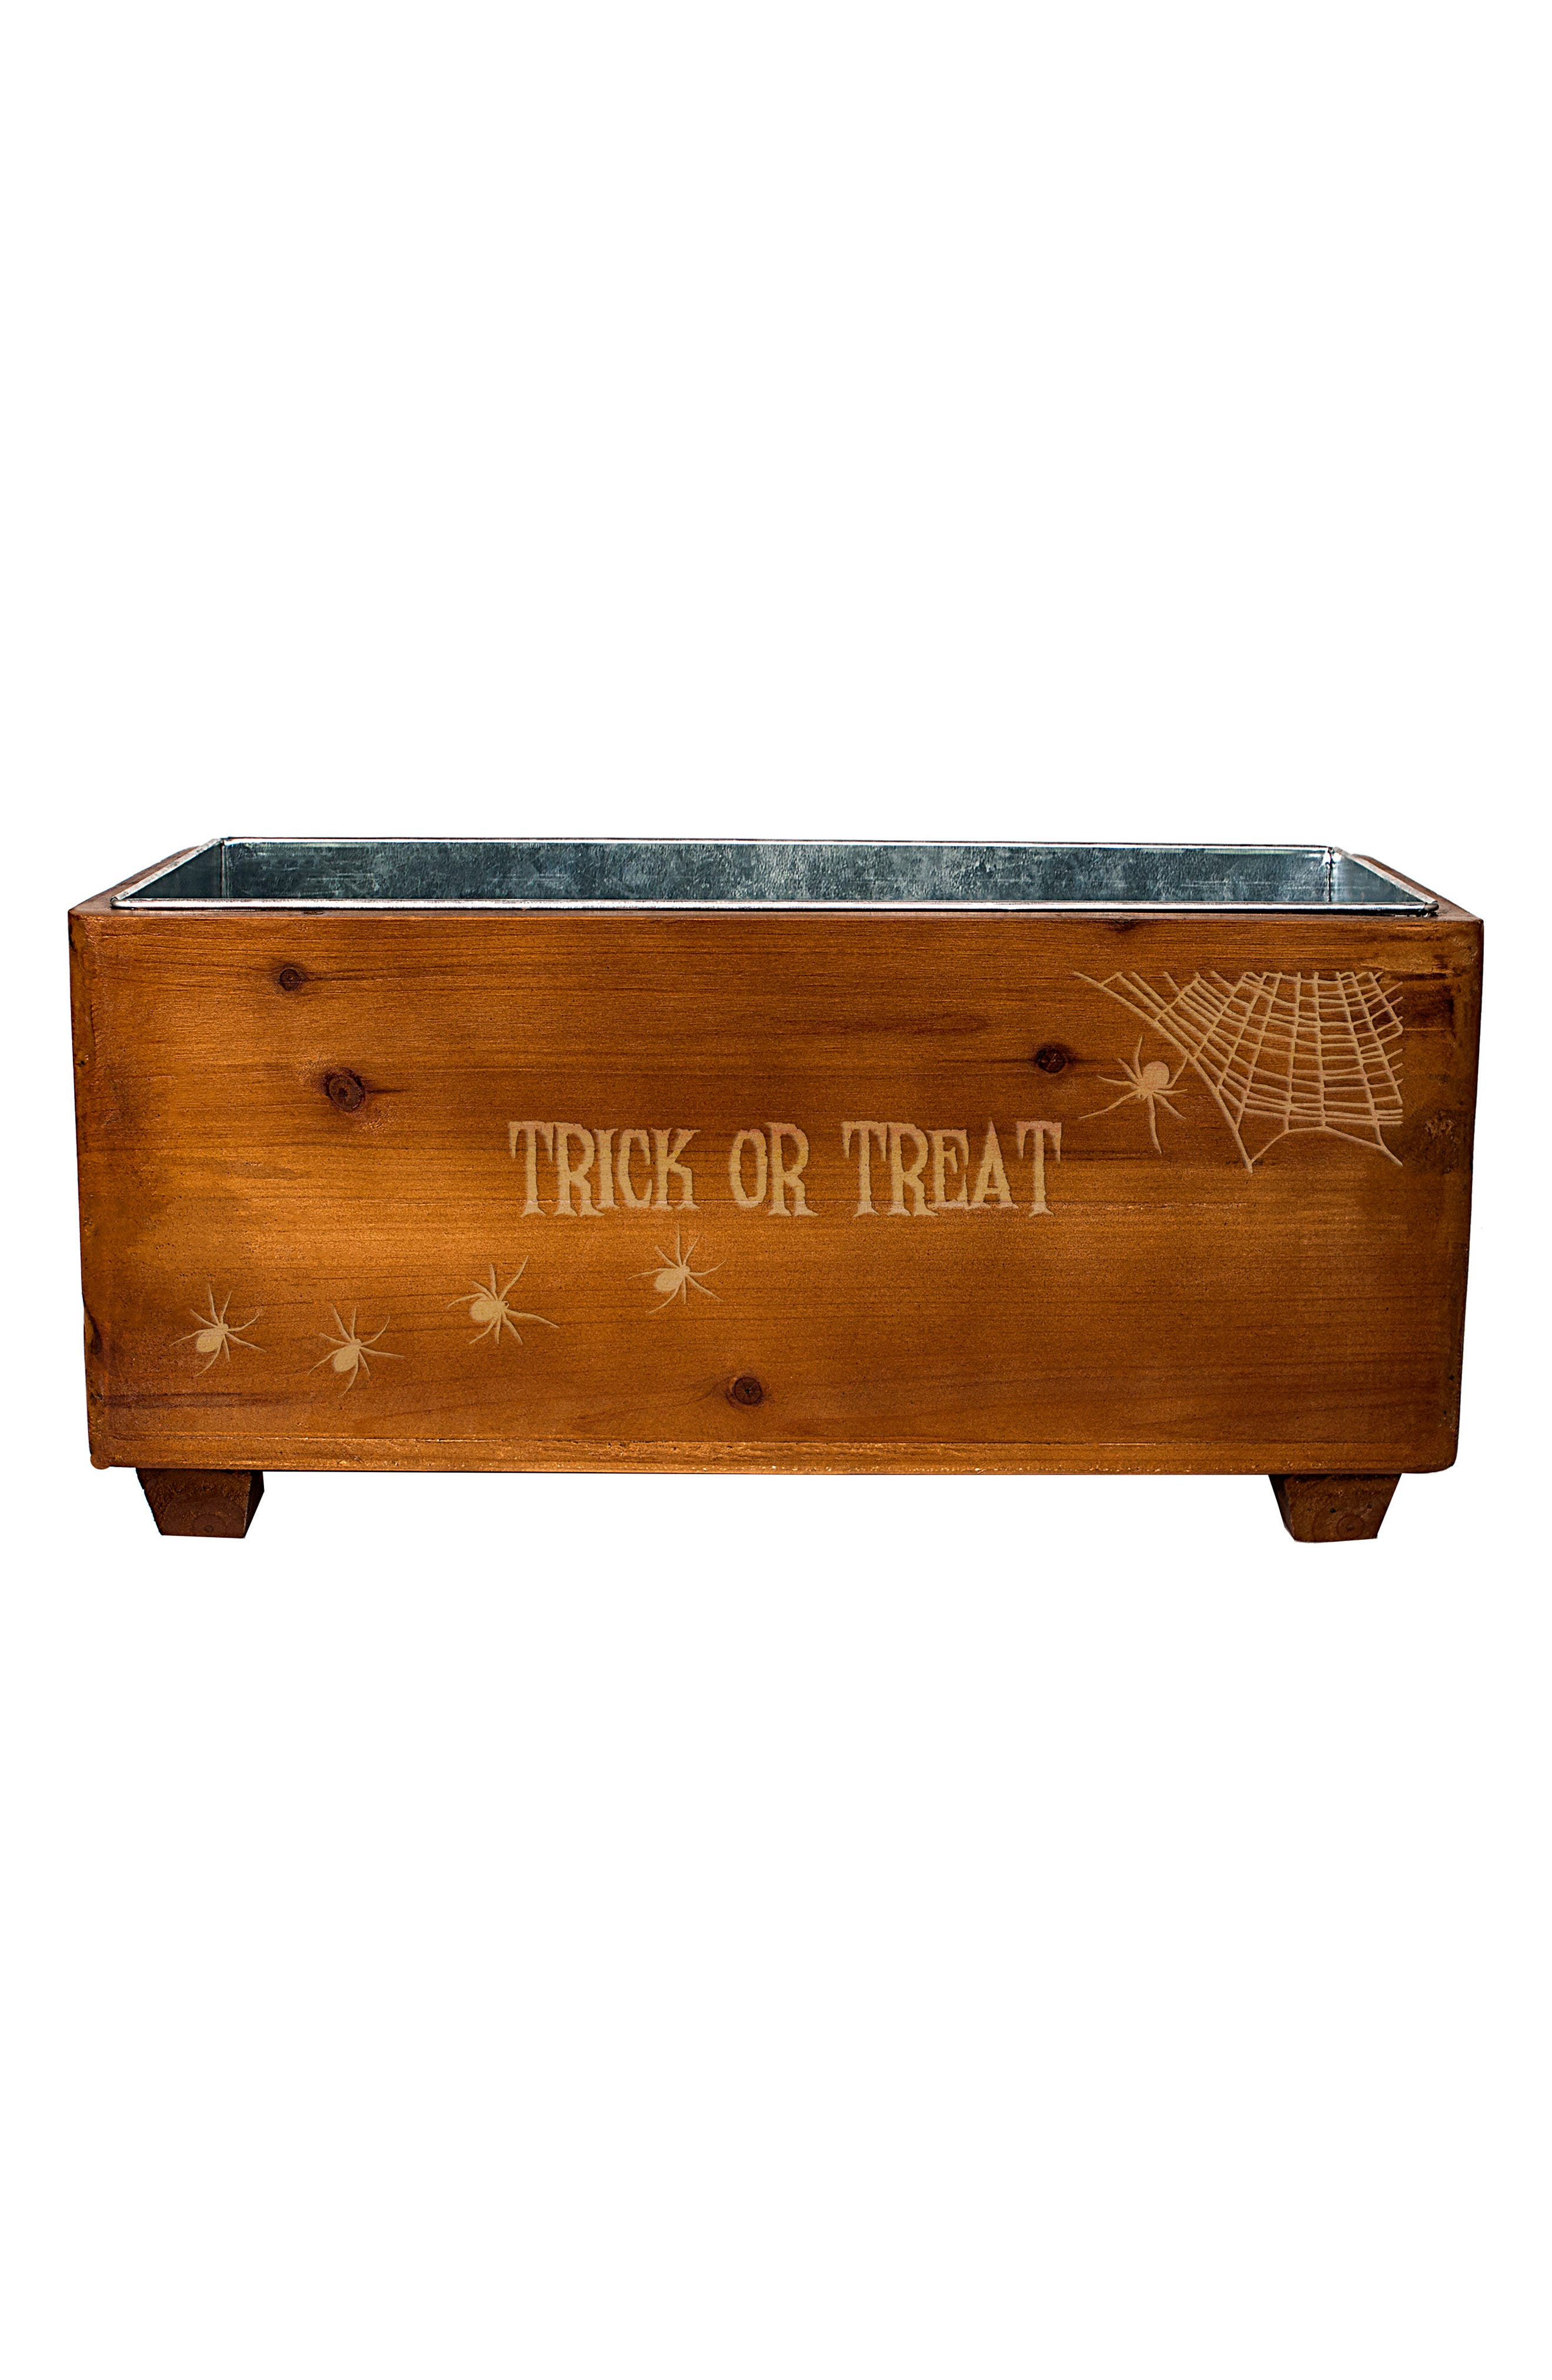 Trick or Treat Wood Wine Trough,                         Main,                         color, Brown